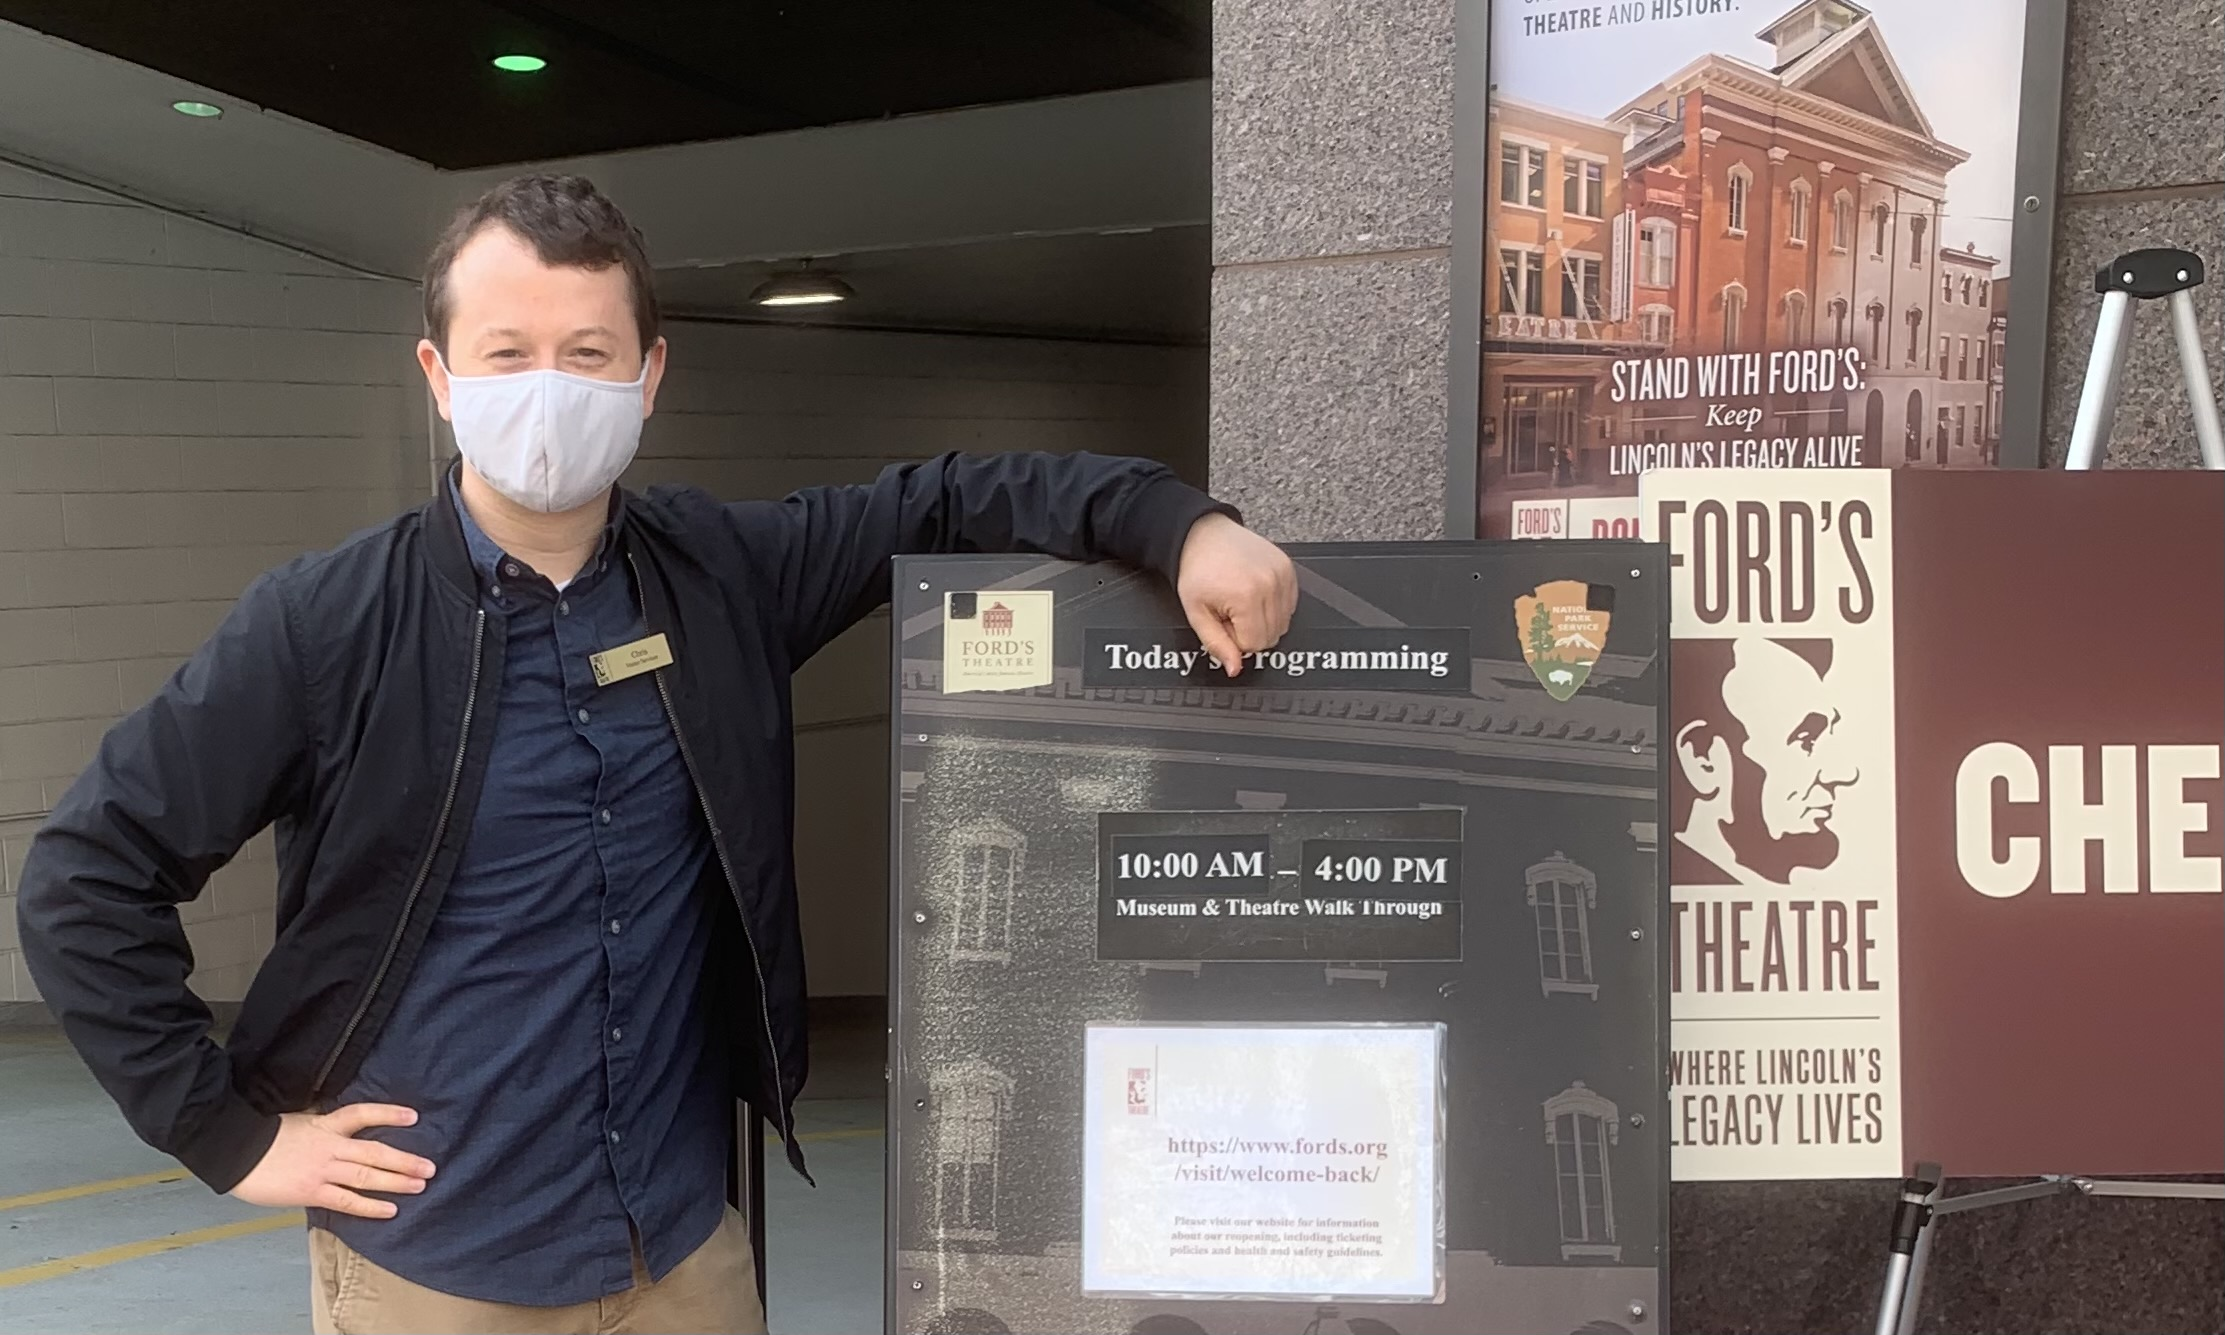 Chris stands outside of the Ford's Theatre entrance with the board where daytime entry details are posted.